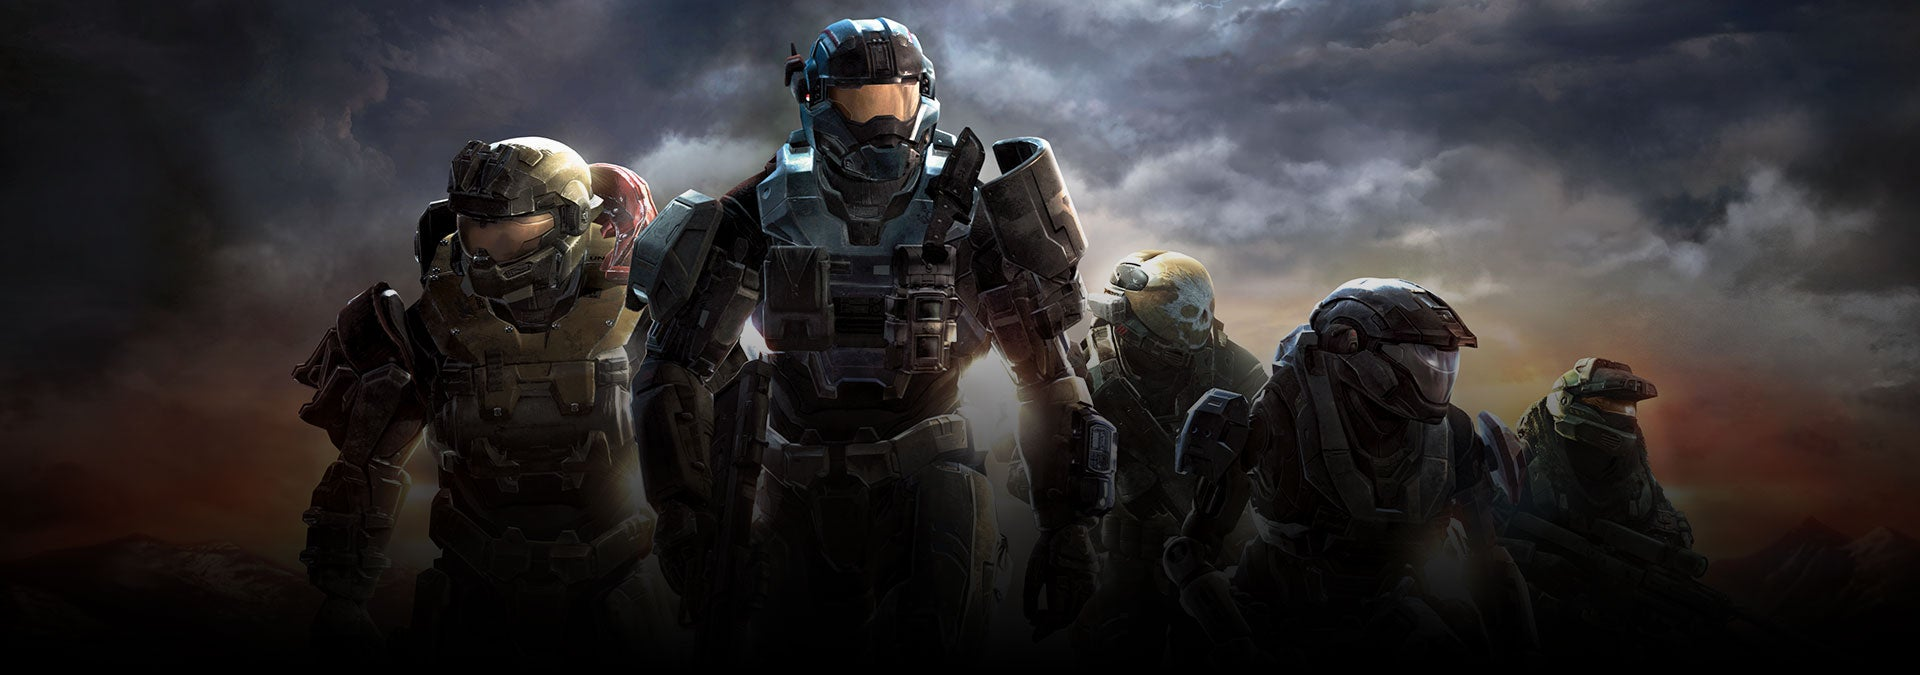 Halo: Reach Doesn't Run Very Well On Xbox One